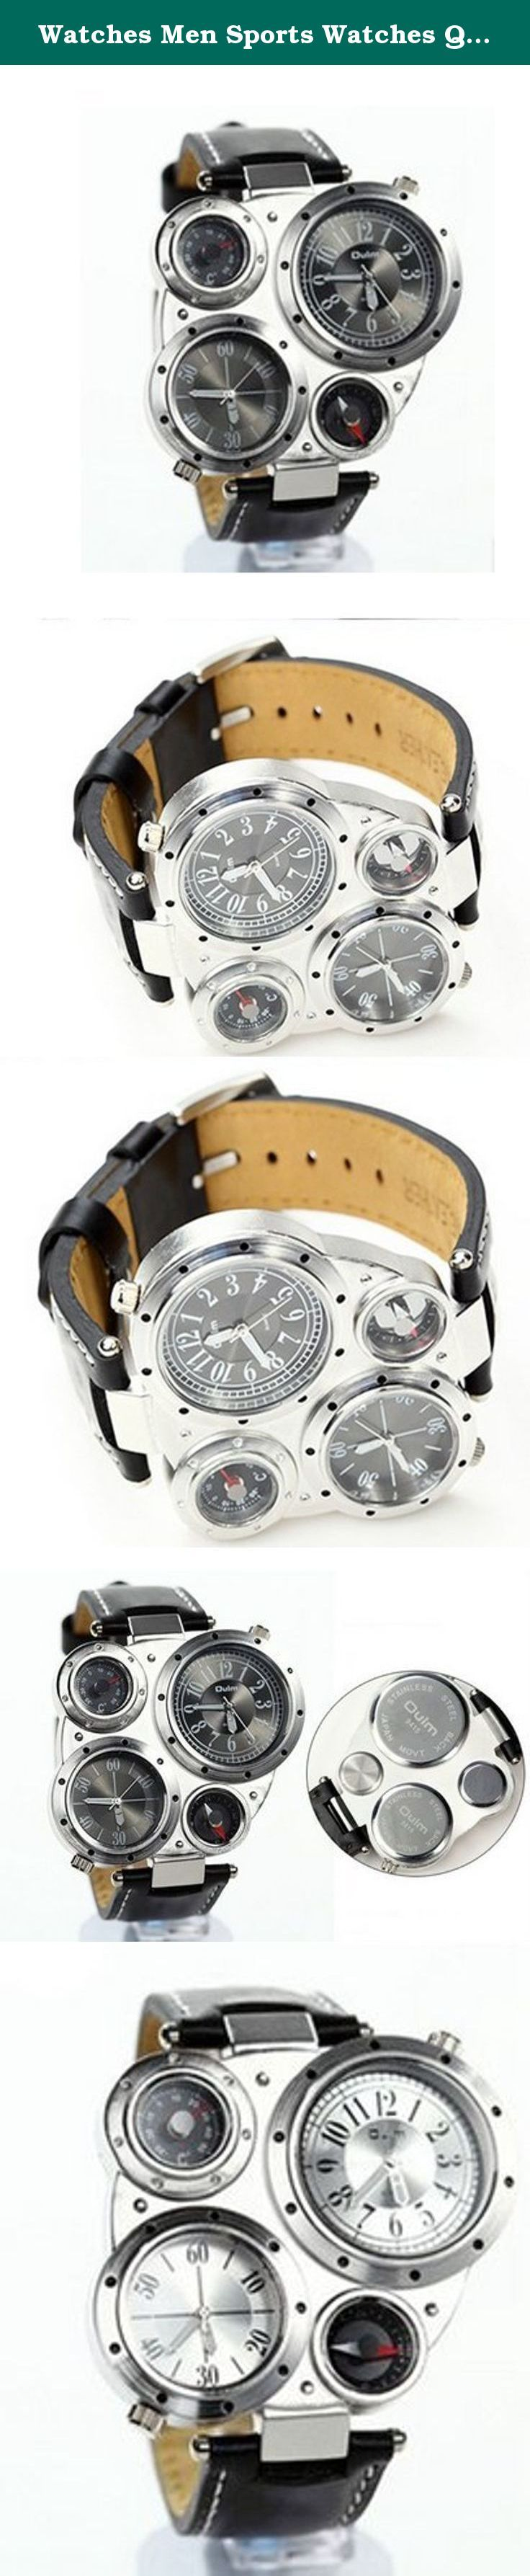 Watches Men Sports Watches Quartz Watch Compass Thermometer Leather Strap Wristwatches Climbing Multiple Time Zone. Item specifics. Item Type: Wristwatches is_customized: Yes Dial Window Material Type: Hardlex Case Material: Alloy Dial Material Type: Alloy Water Resistance Depth: 3 m Movement: Quartz Band With: 20mm to 29mm Dial Diameter: 1.8 cm Band Width: 22mm Clasp Type: Buckle Style: Fashion & Casual Gender: Men Condition: New without tags Dial Display: Analog Feature: Water...